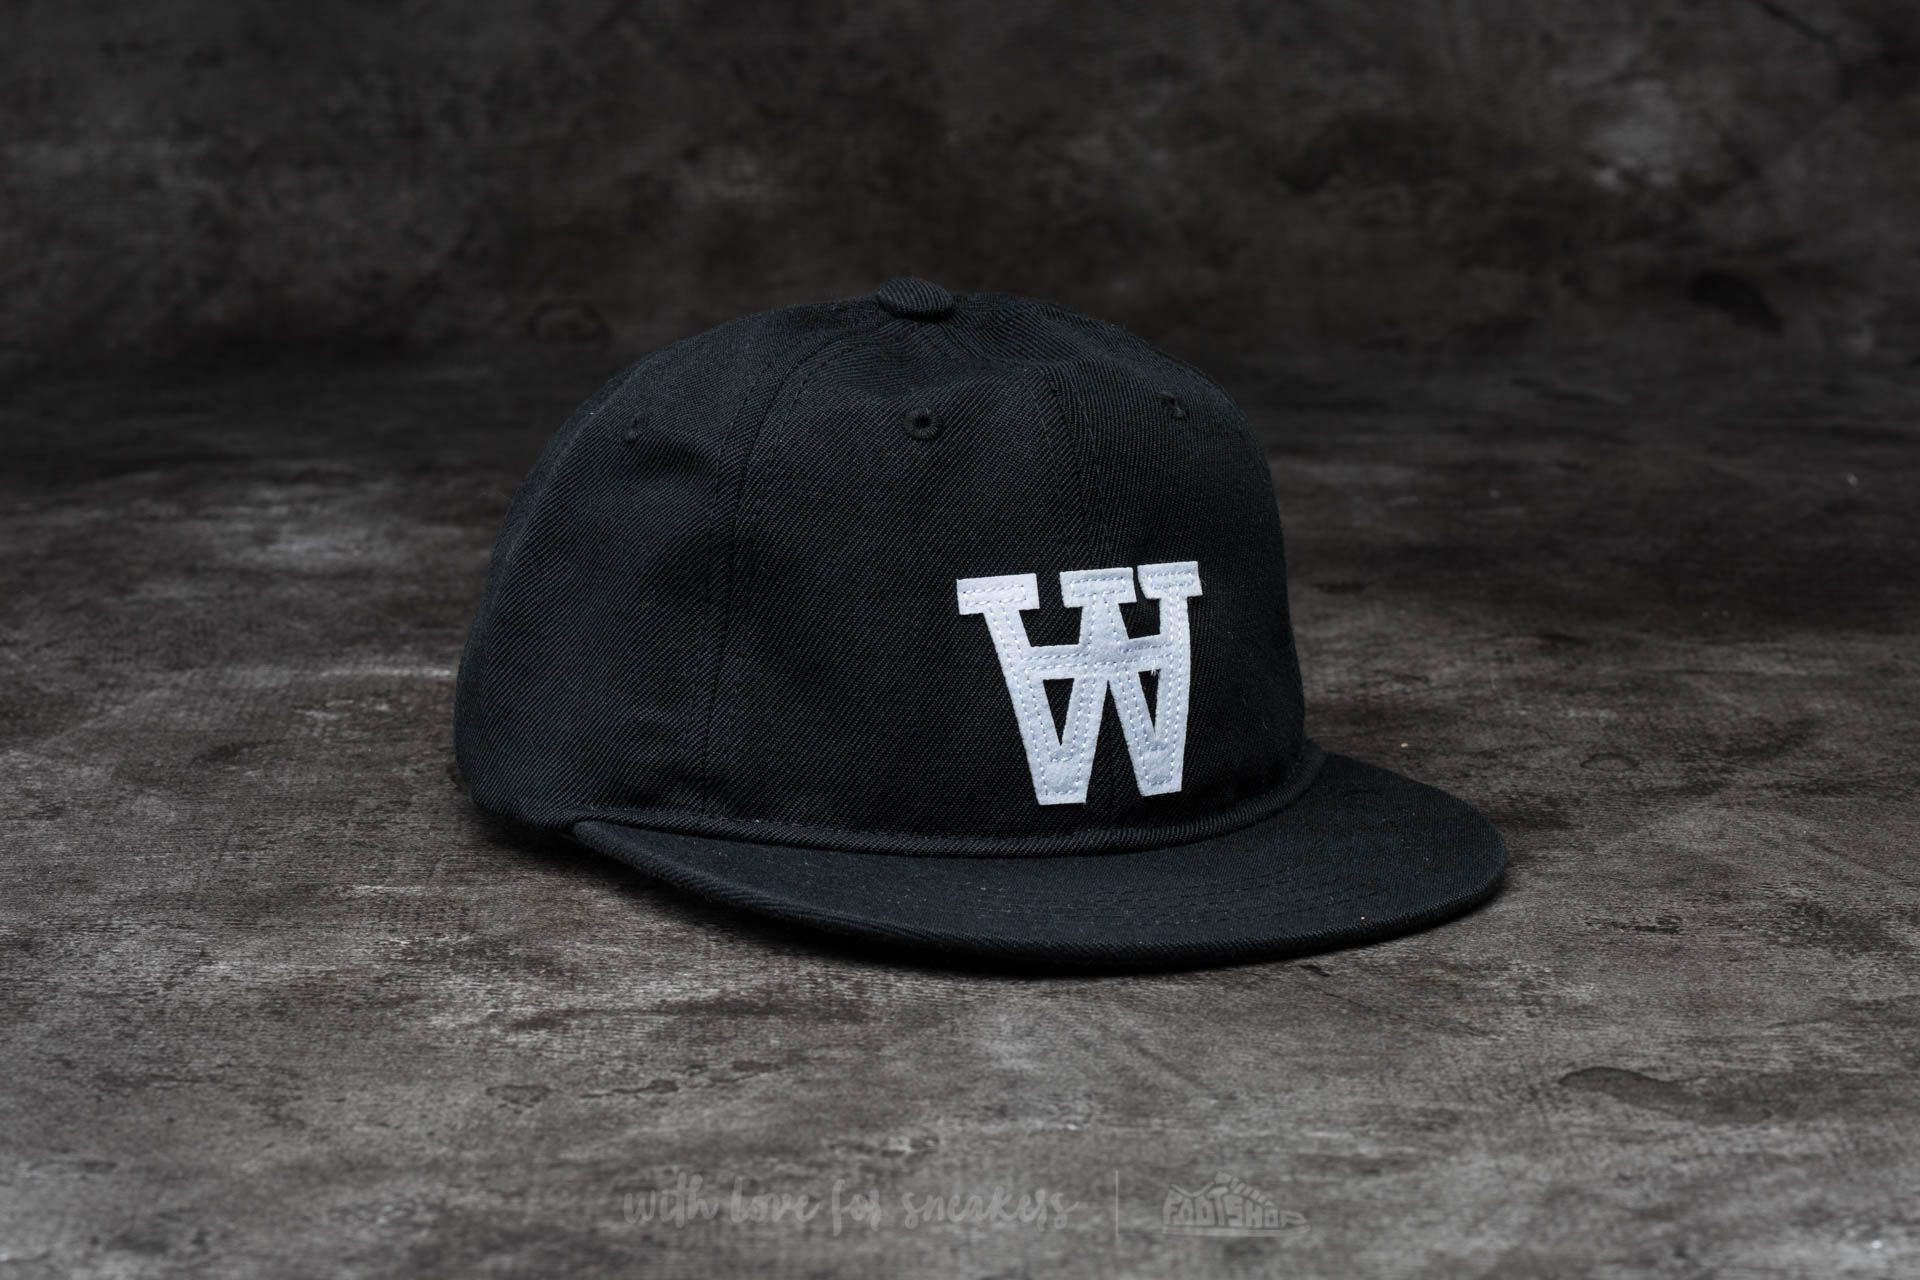 WOOD WOOD Baseball Cap Black